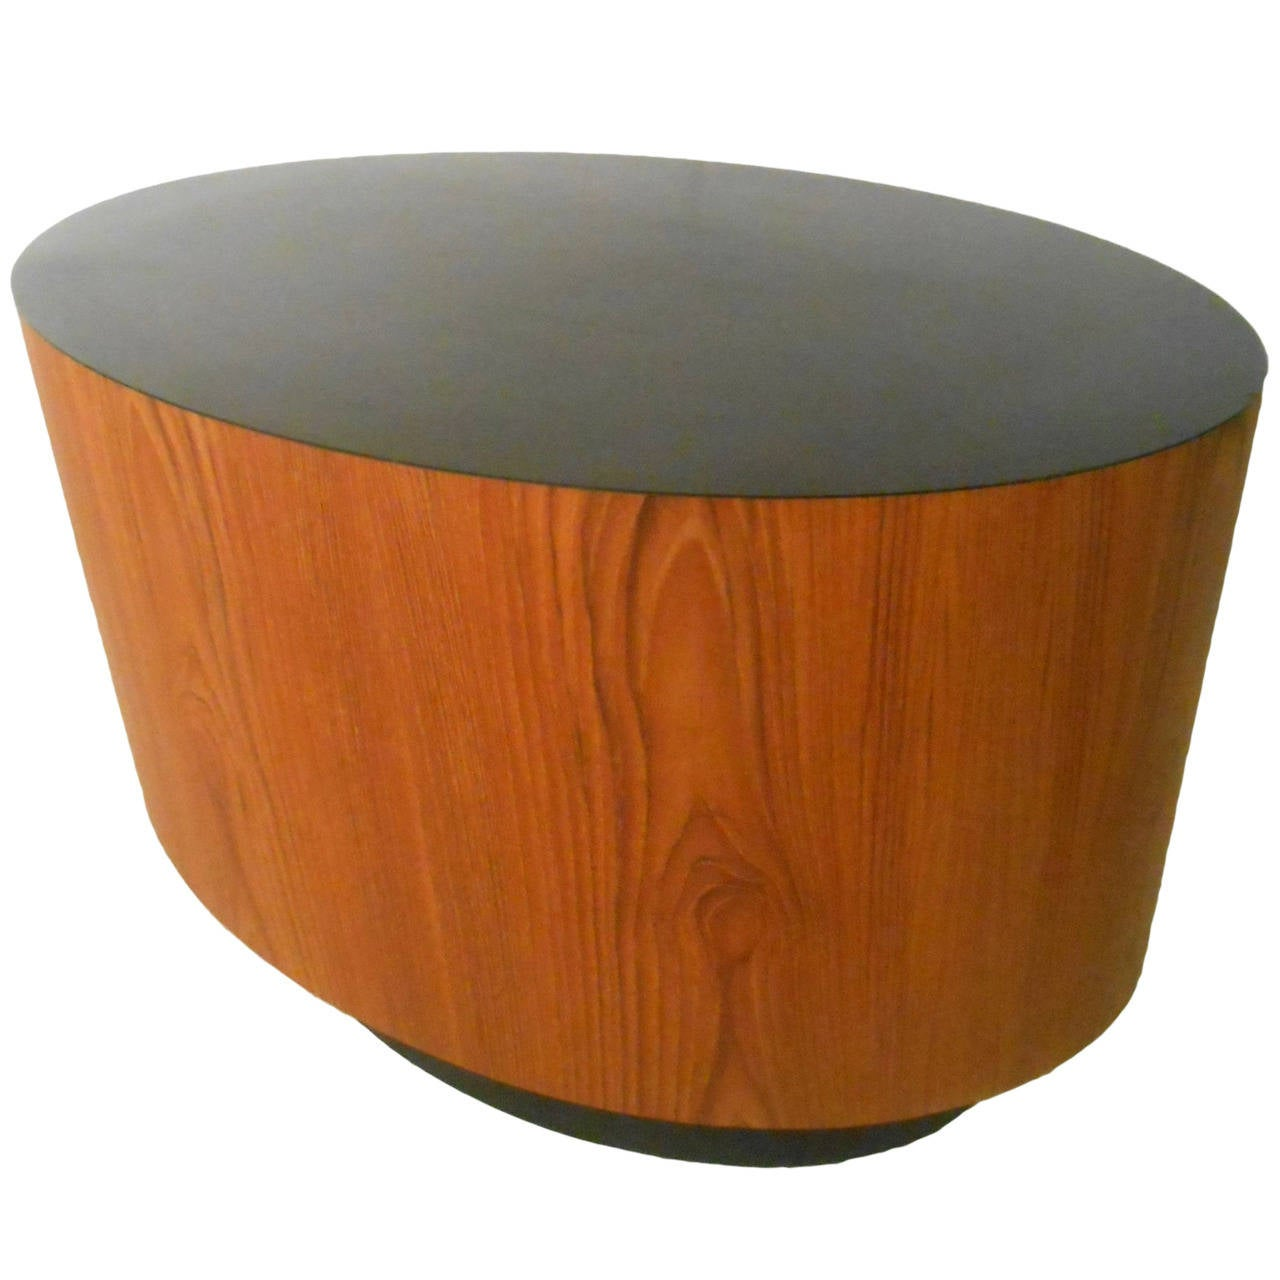 Unique mid century modern adrian pearsall style side table for Unique side tables